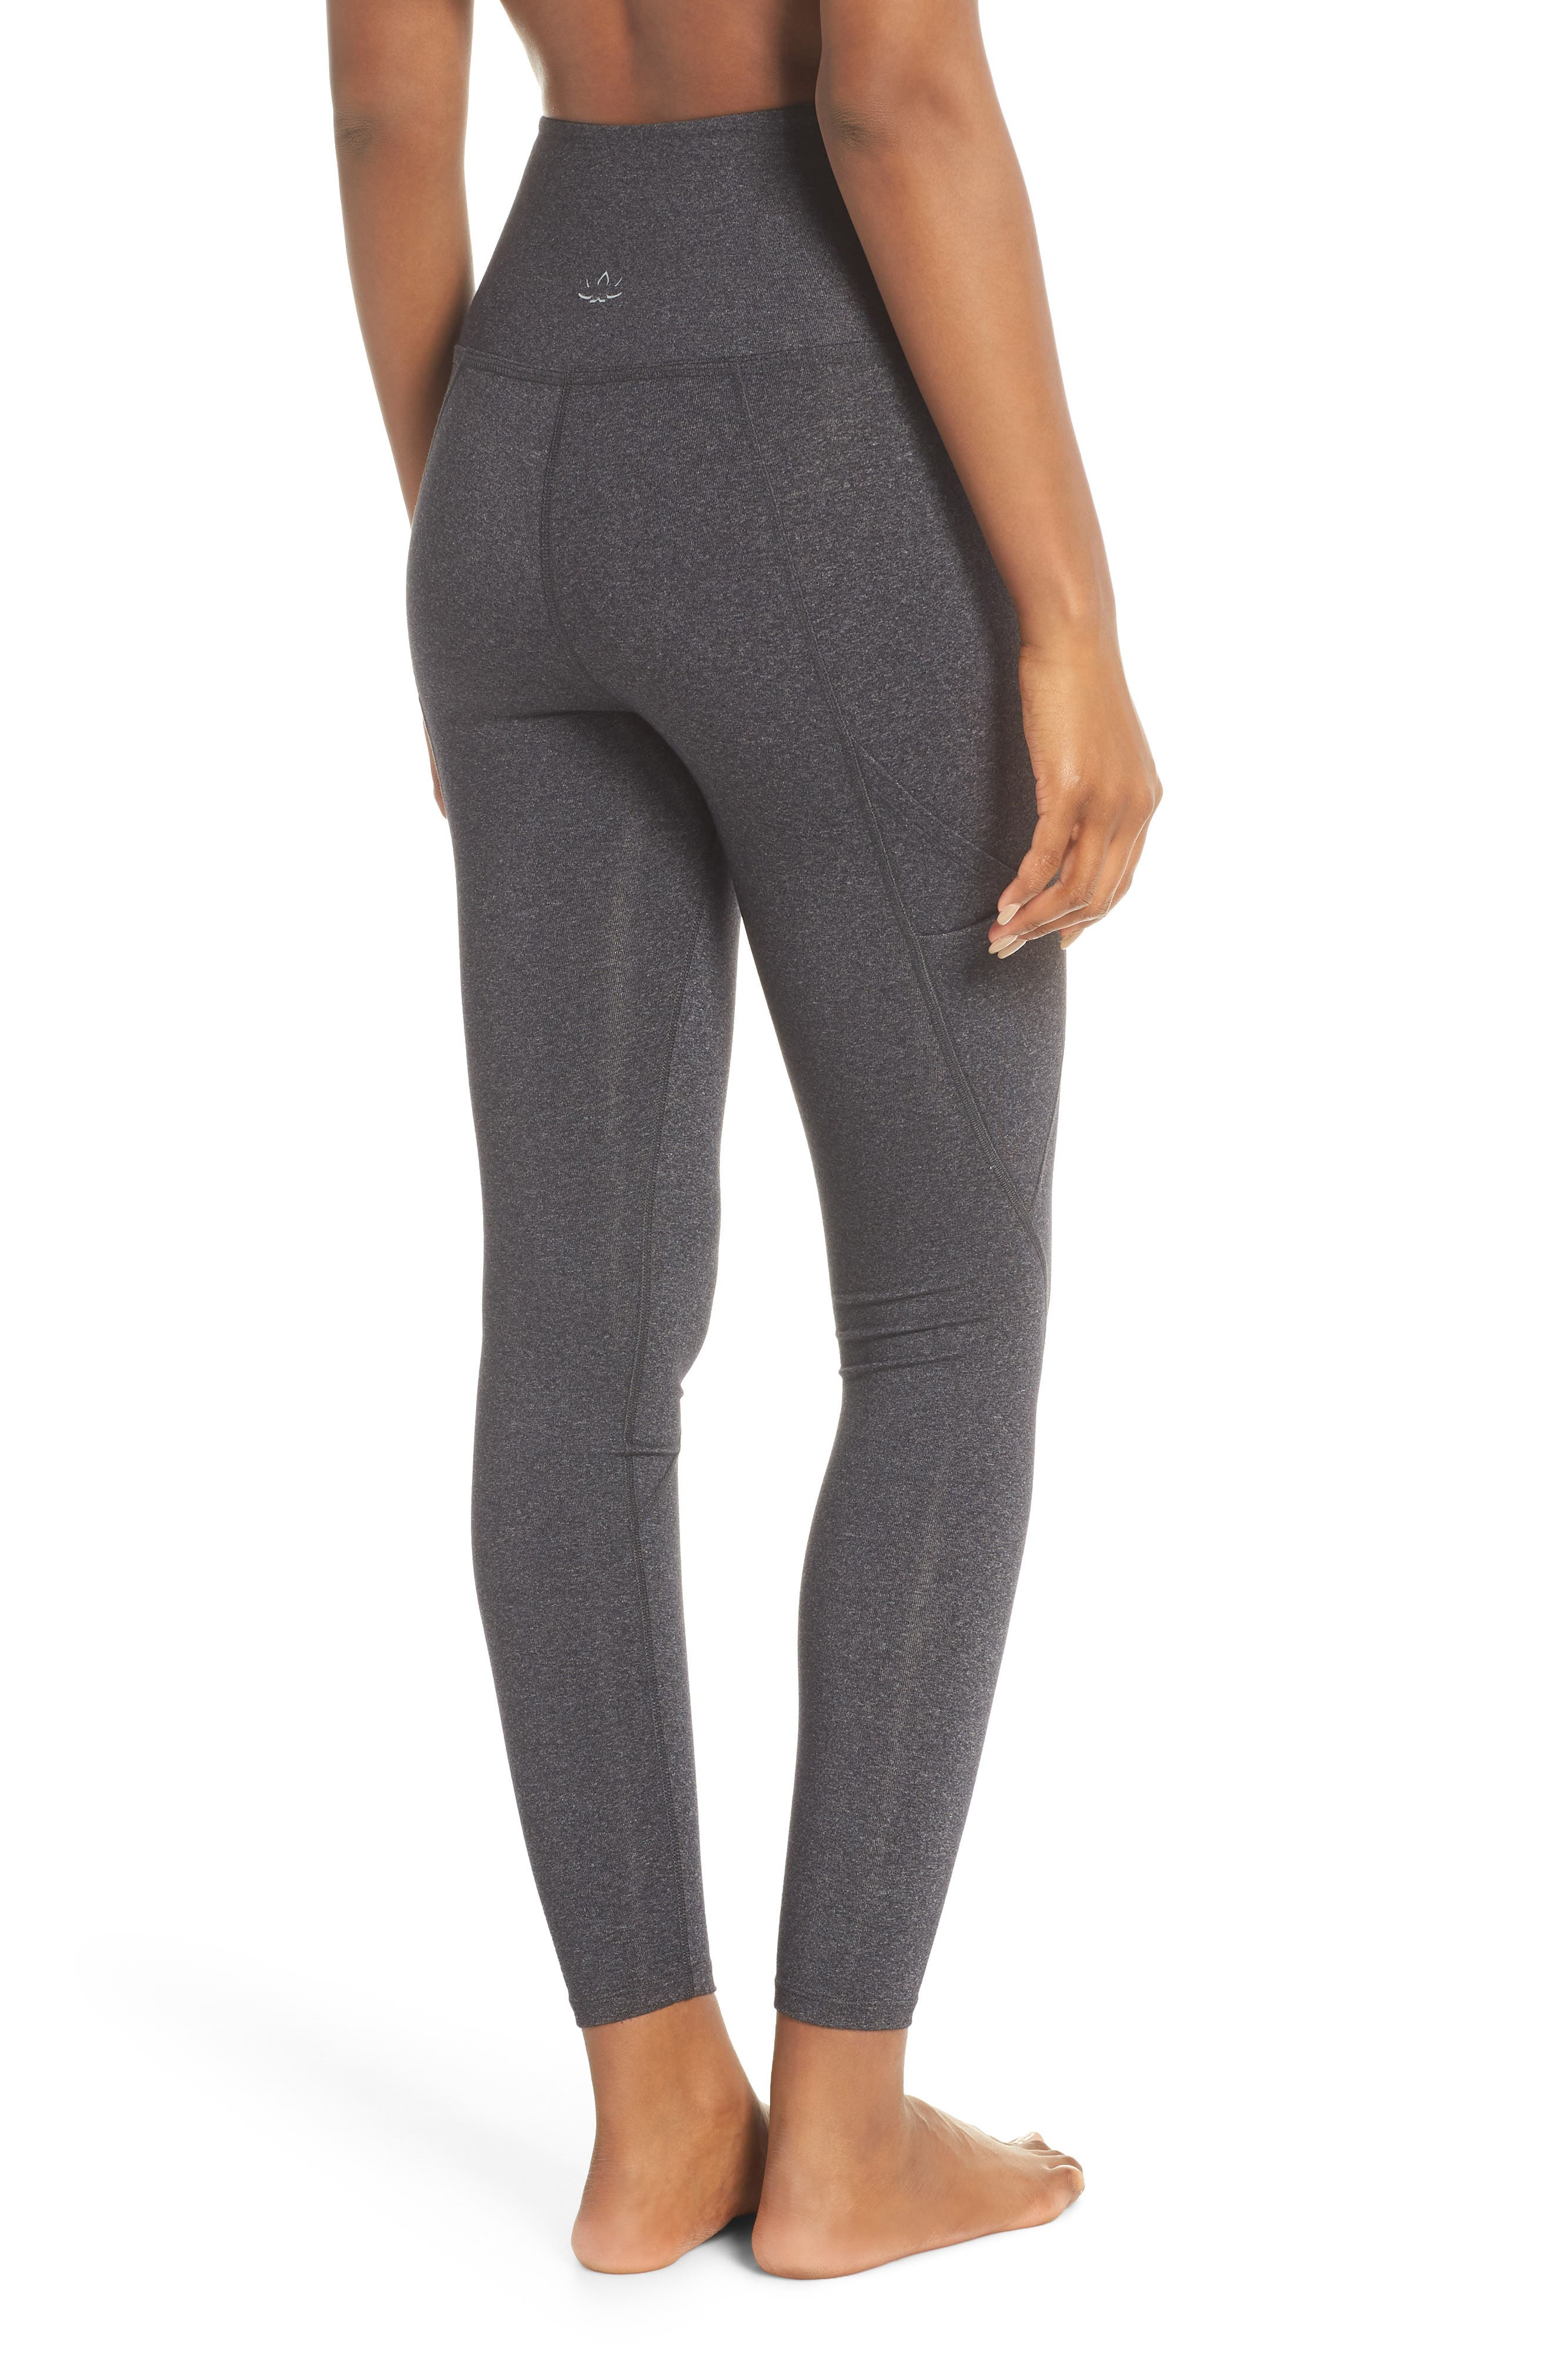 Palomino Midi High Waisted Leggings,                             Alternate thumbnail 2, color,                             030